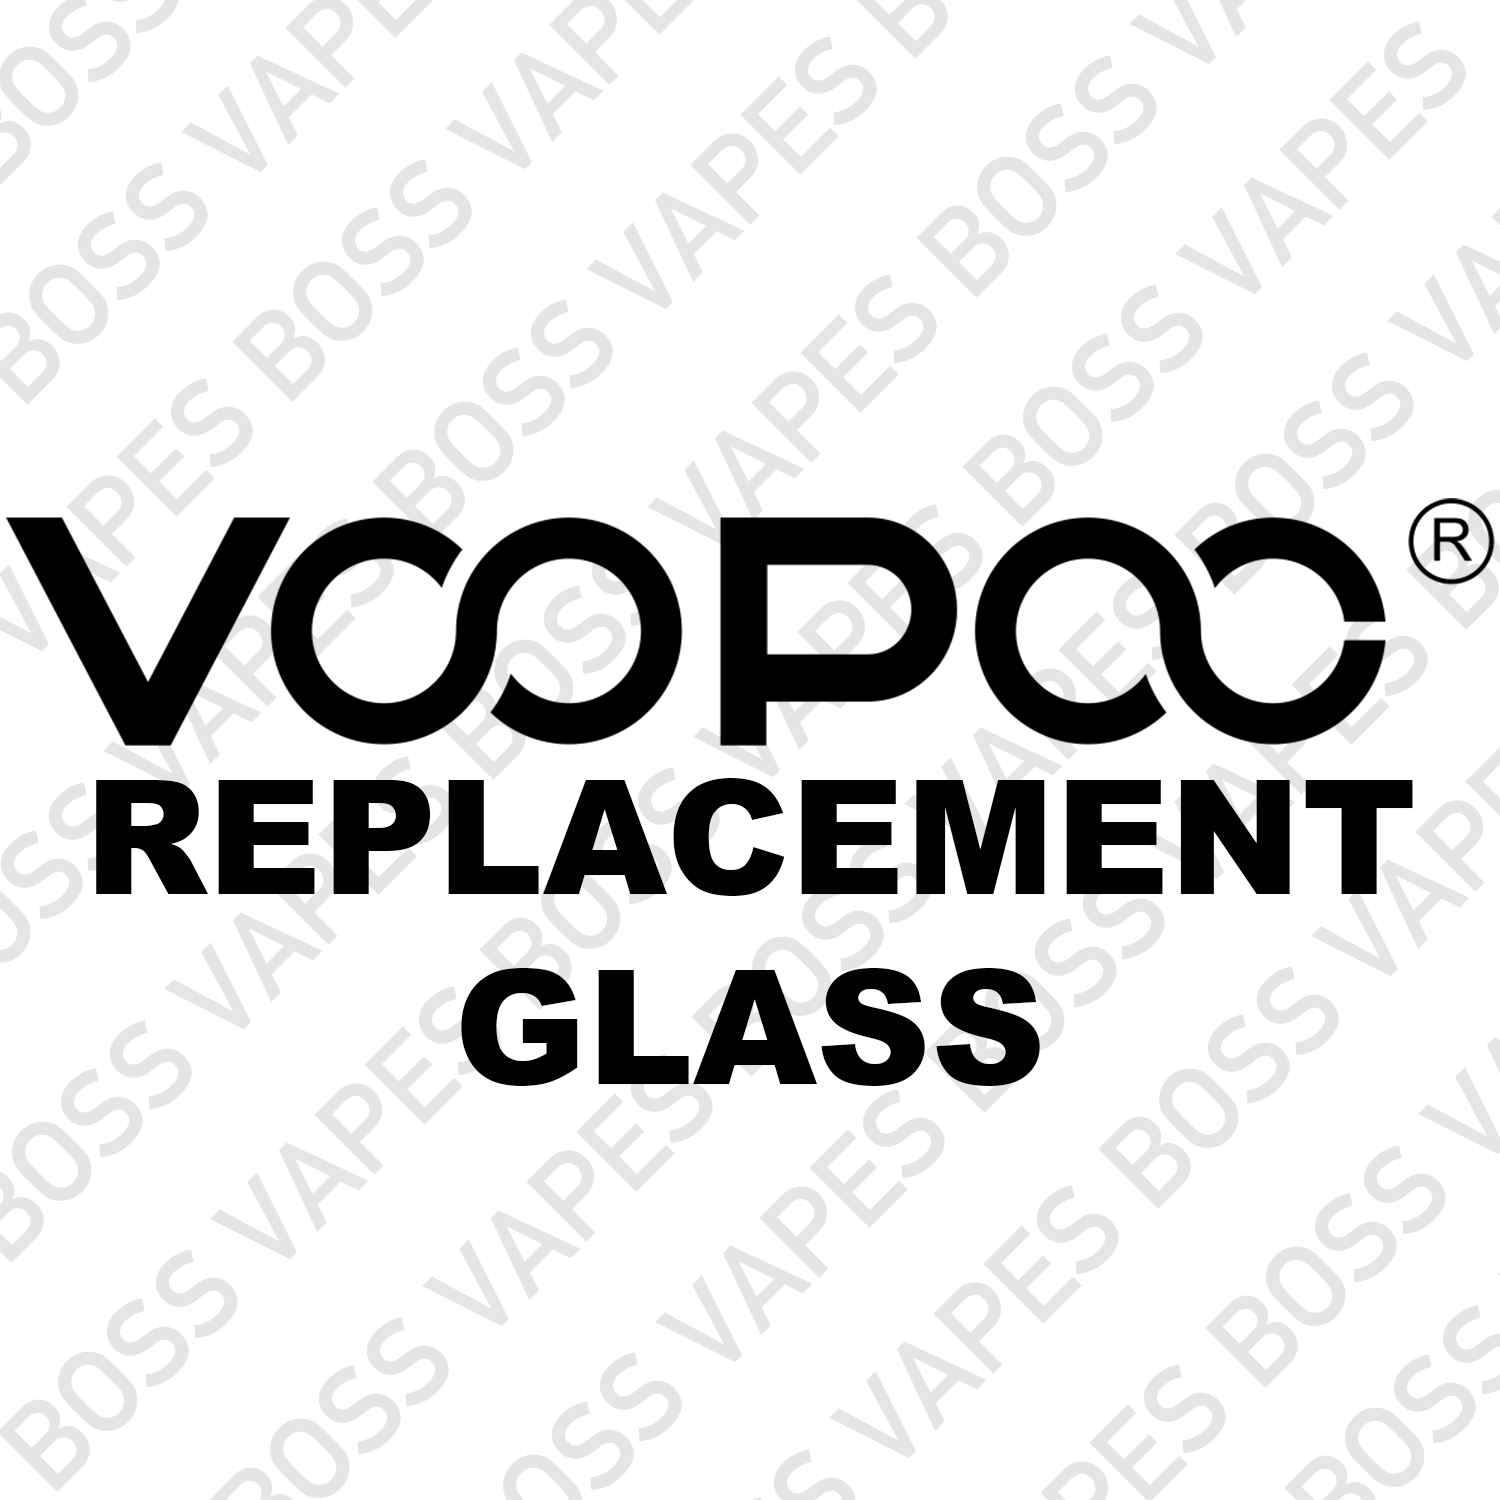 Voopoo Replacement Glass - Boss Vapes